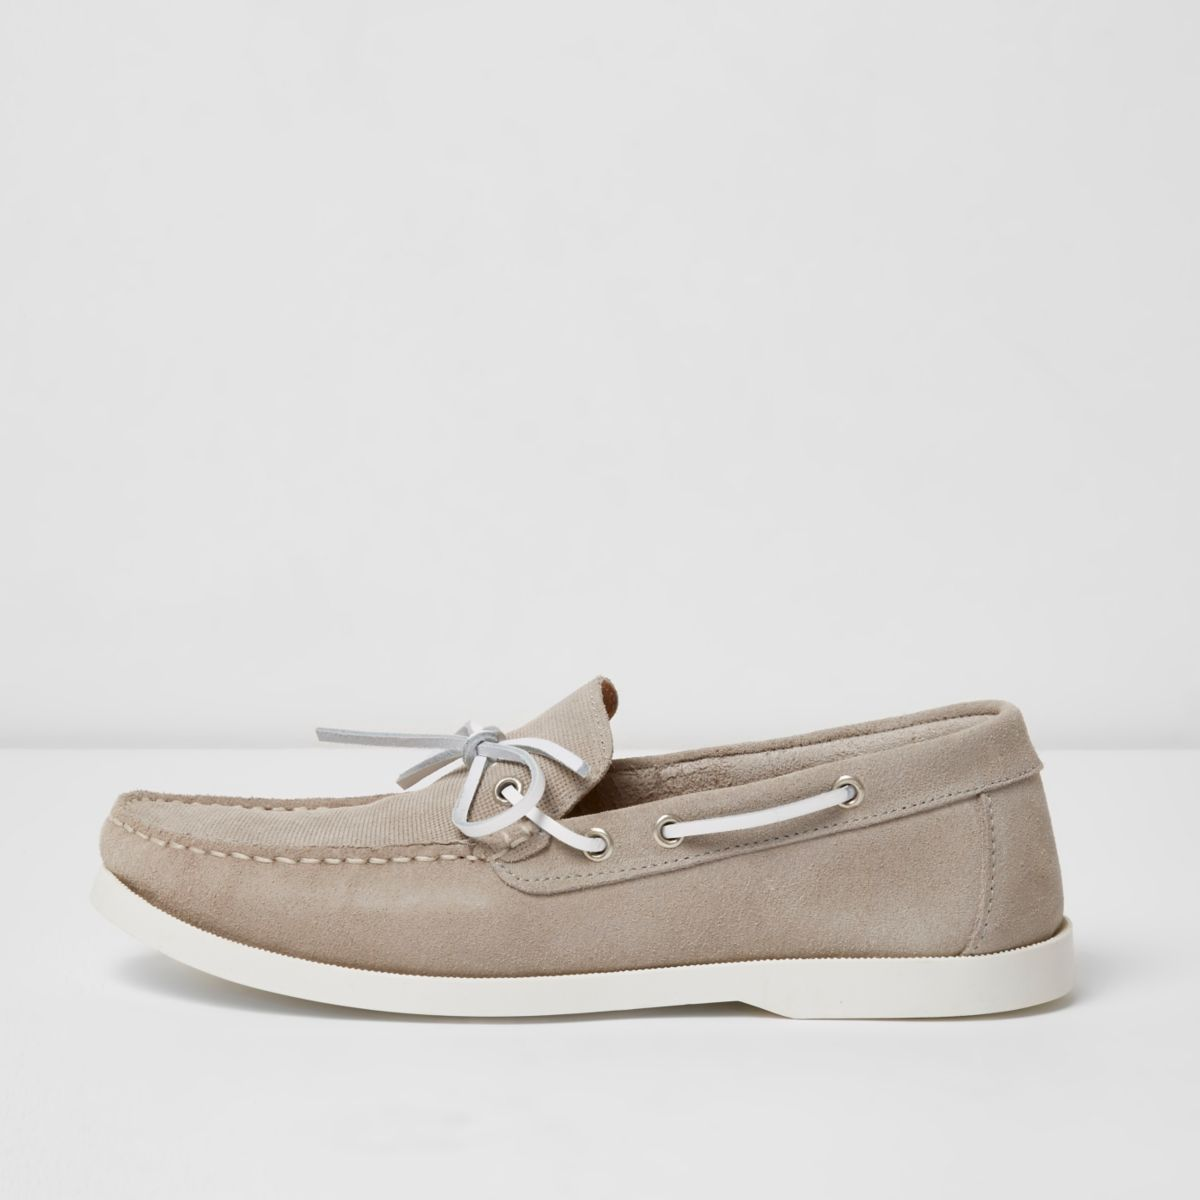 Light grey suede boat shoes